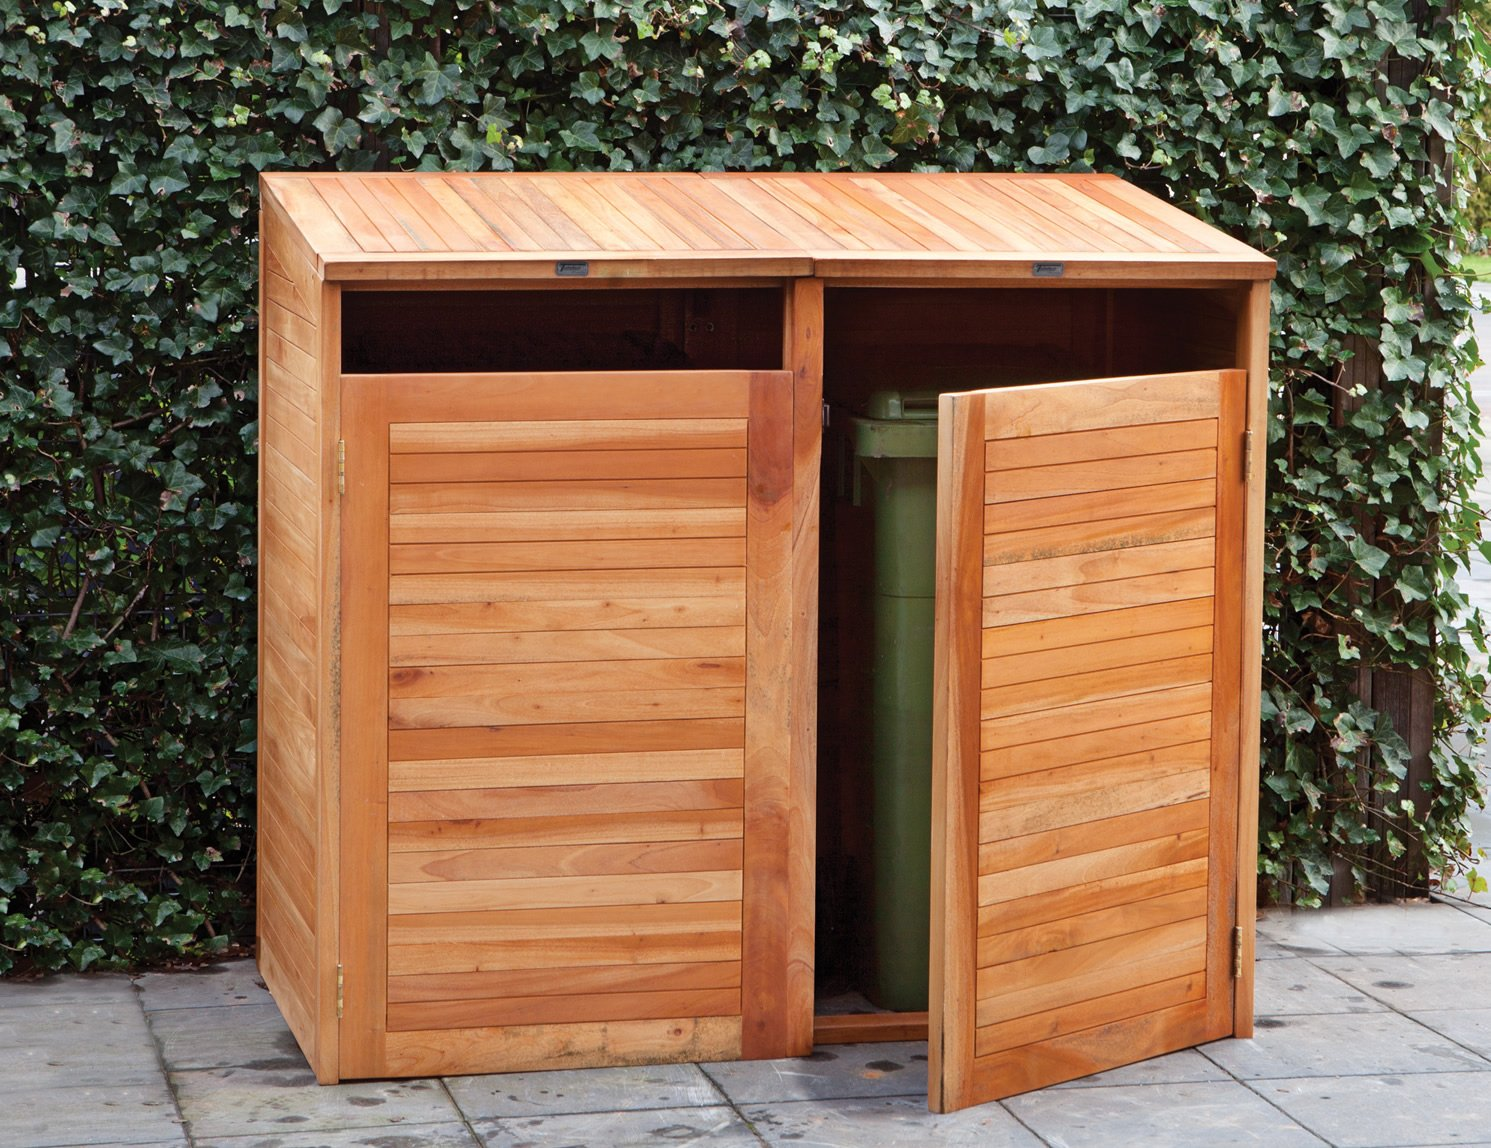 Hardwood double wheelie bin store for Armoire exterieur